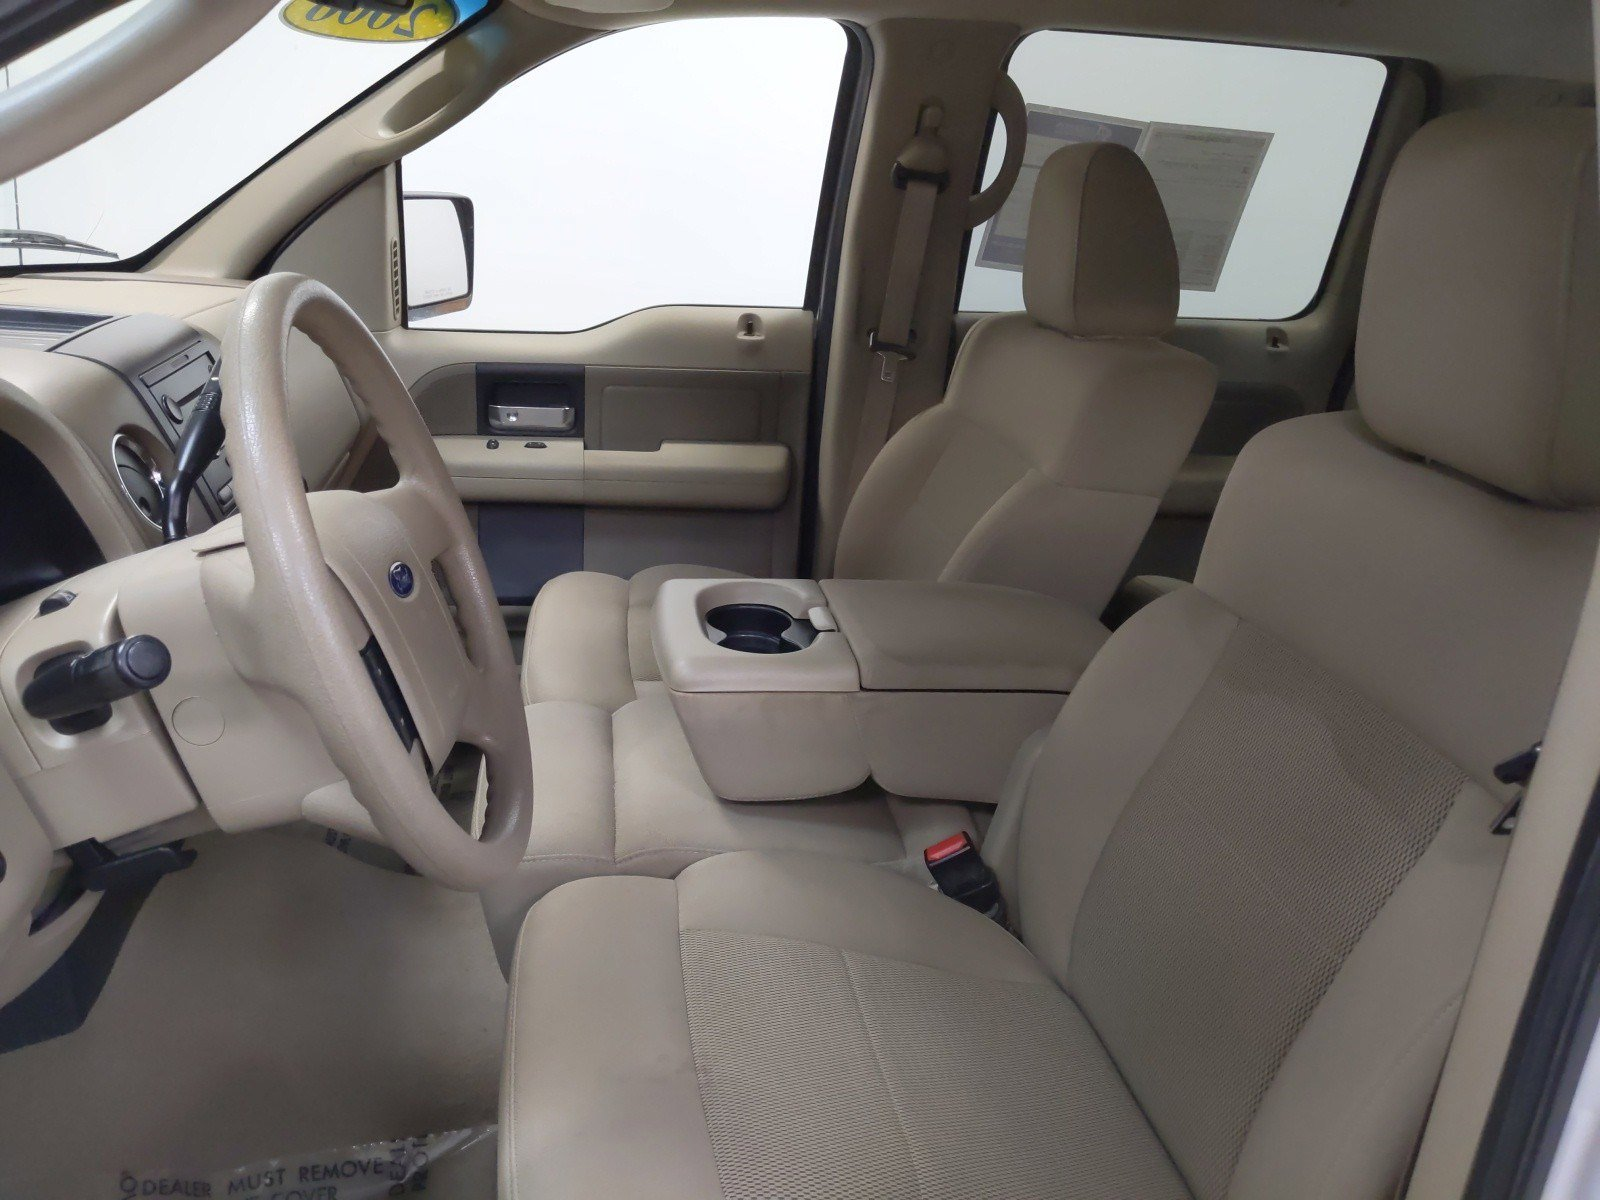 Used 2006 Ford F-150 XLT 4D Crew Cab for sale in Grand Island NE